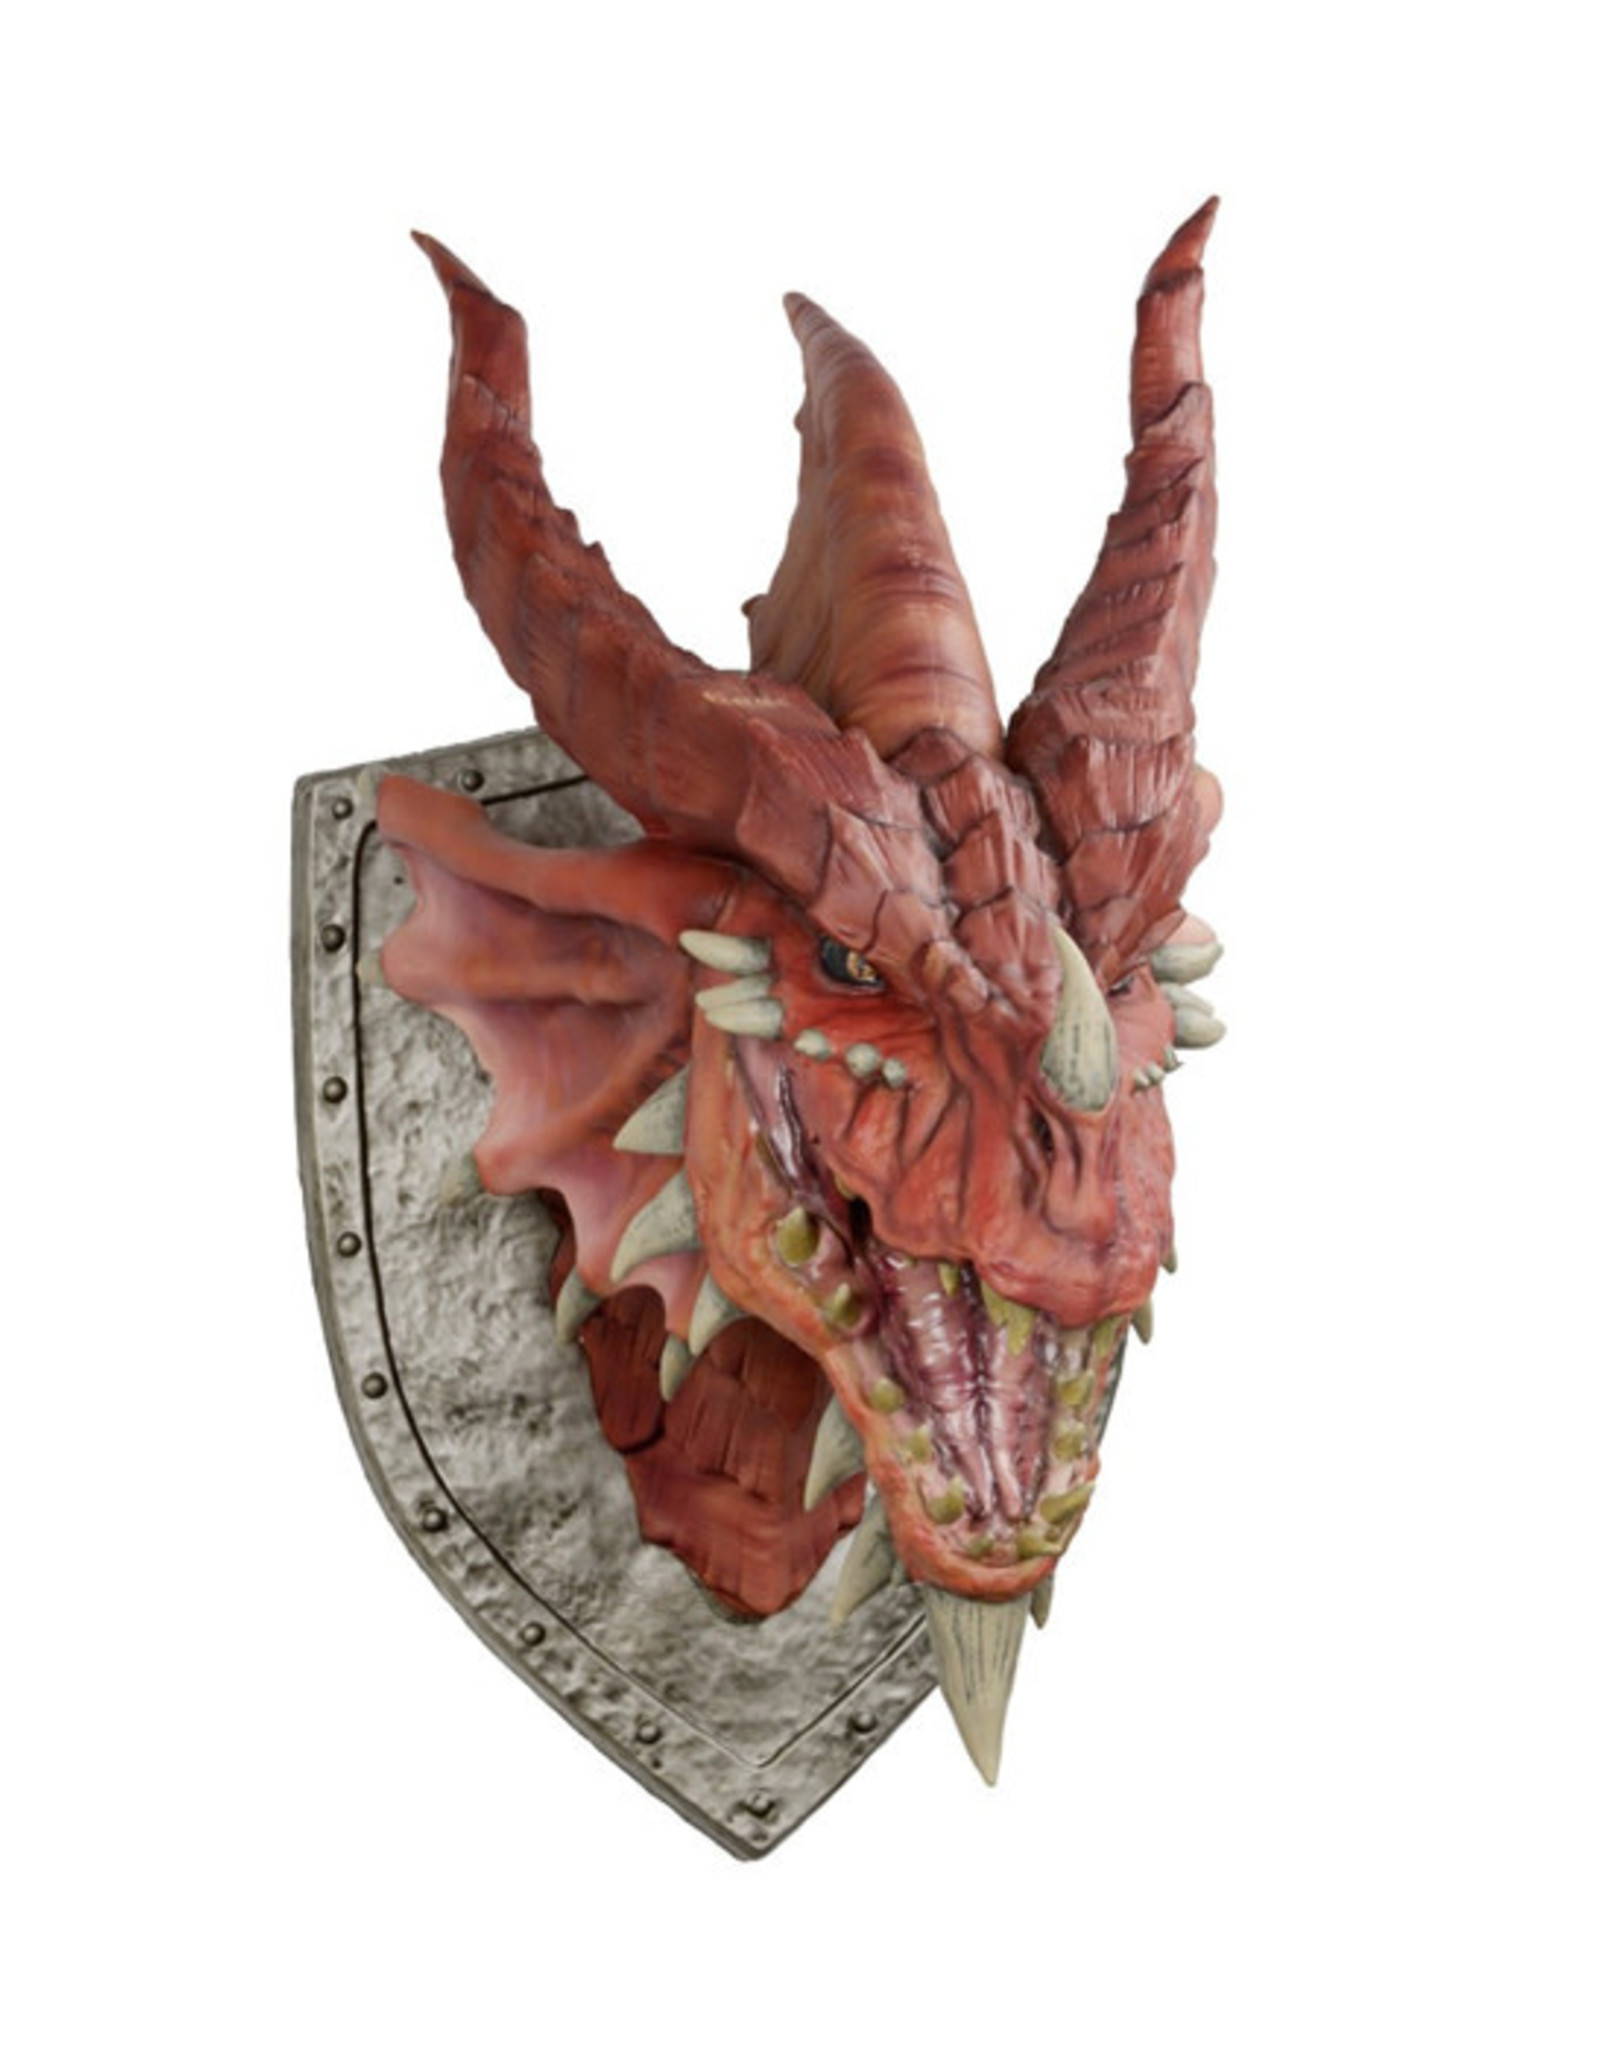 Dungeons & Dragons Dungeons & Dragons: Trophy Plaque - Red Dragon